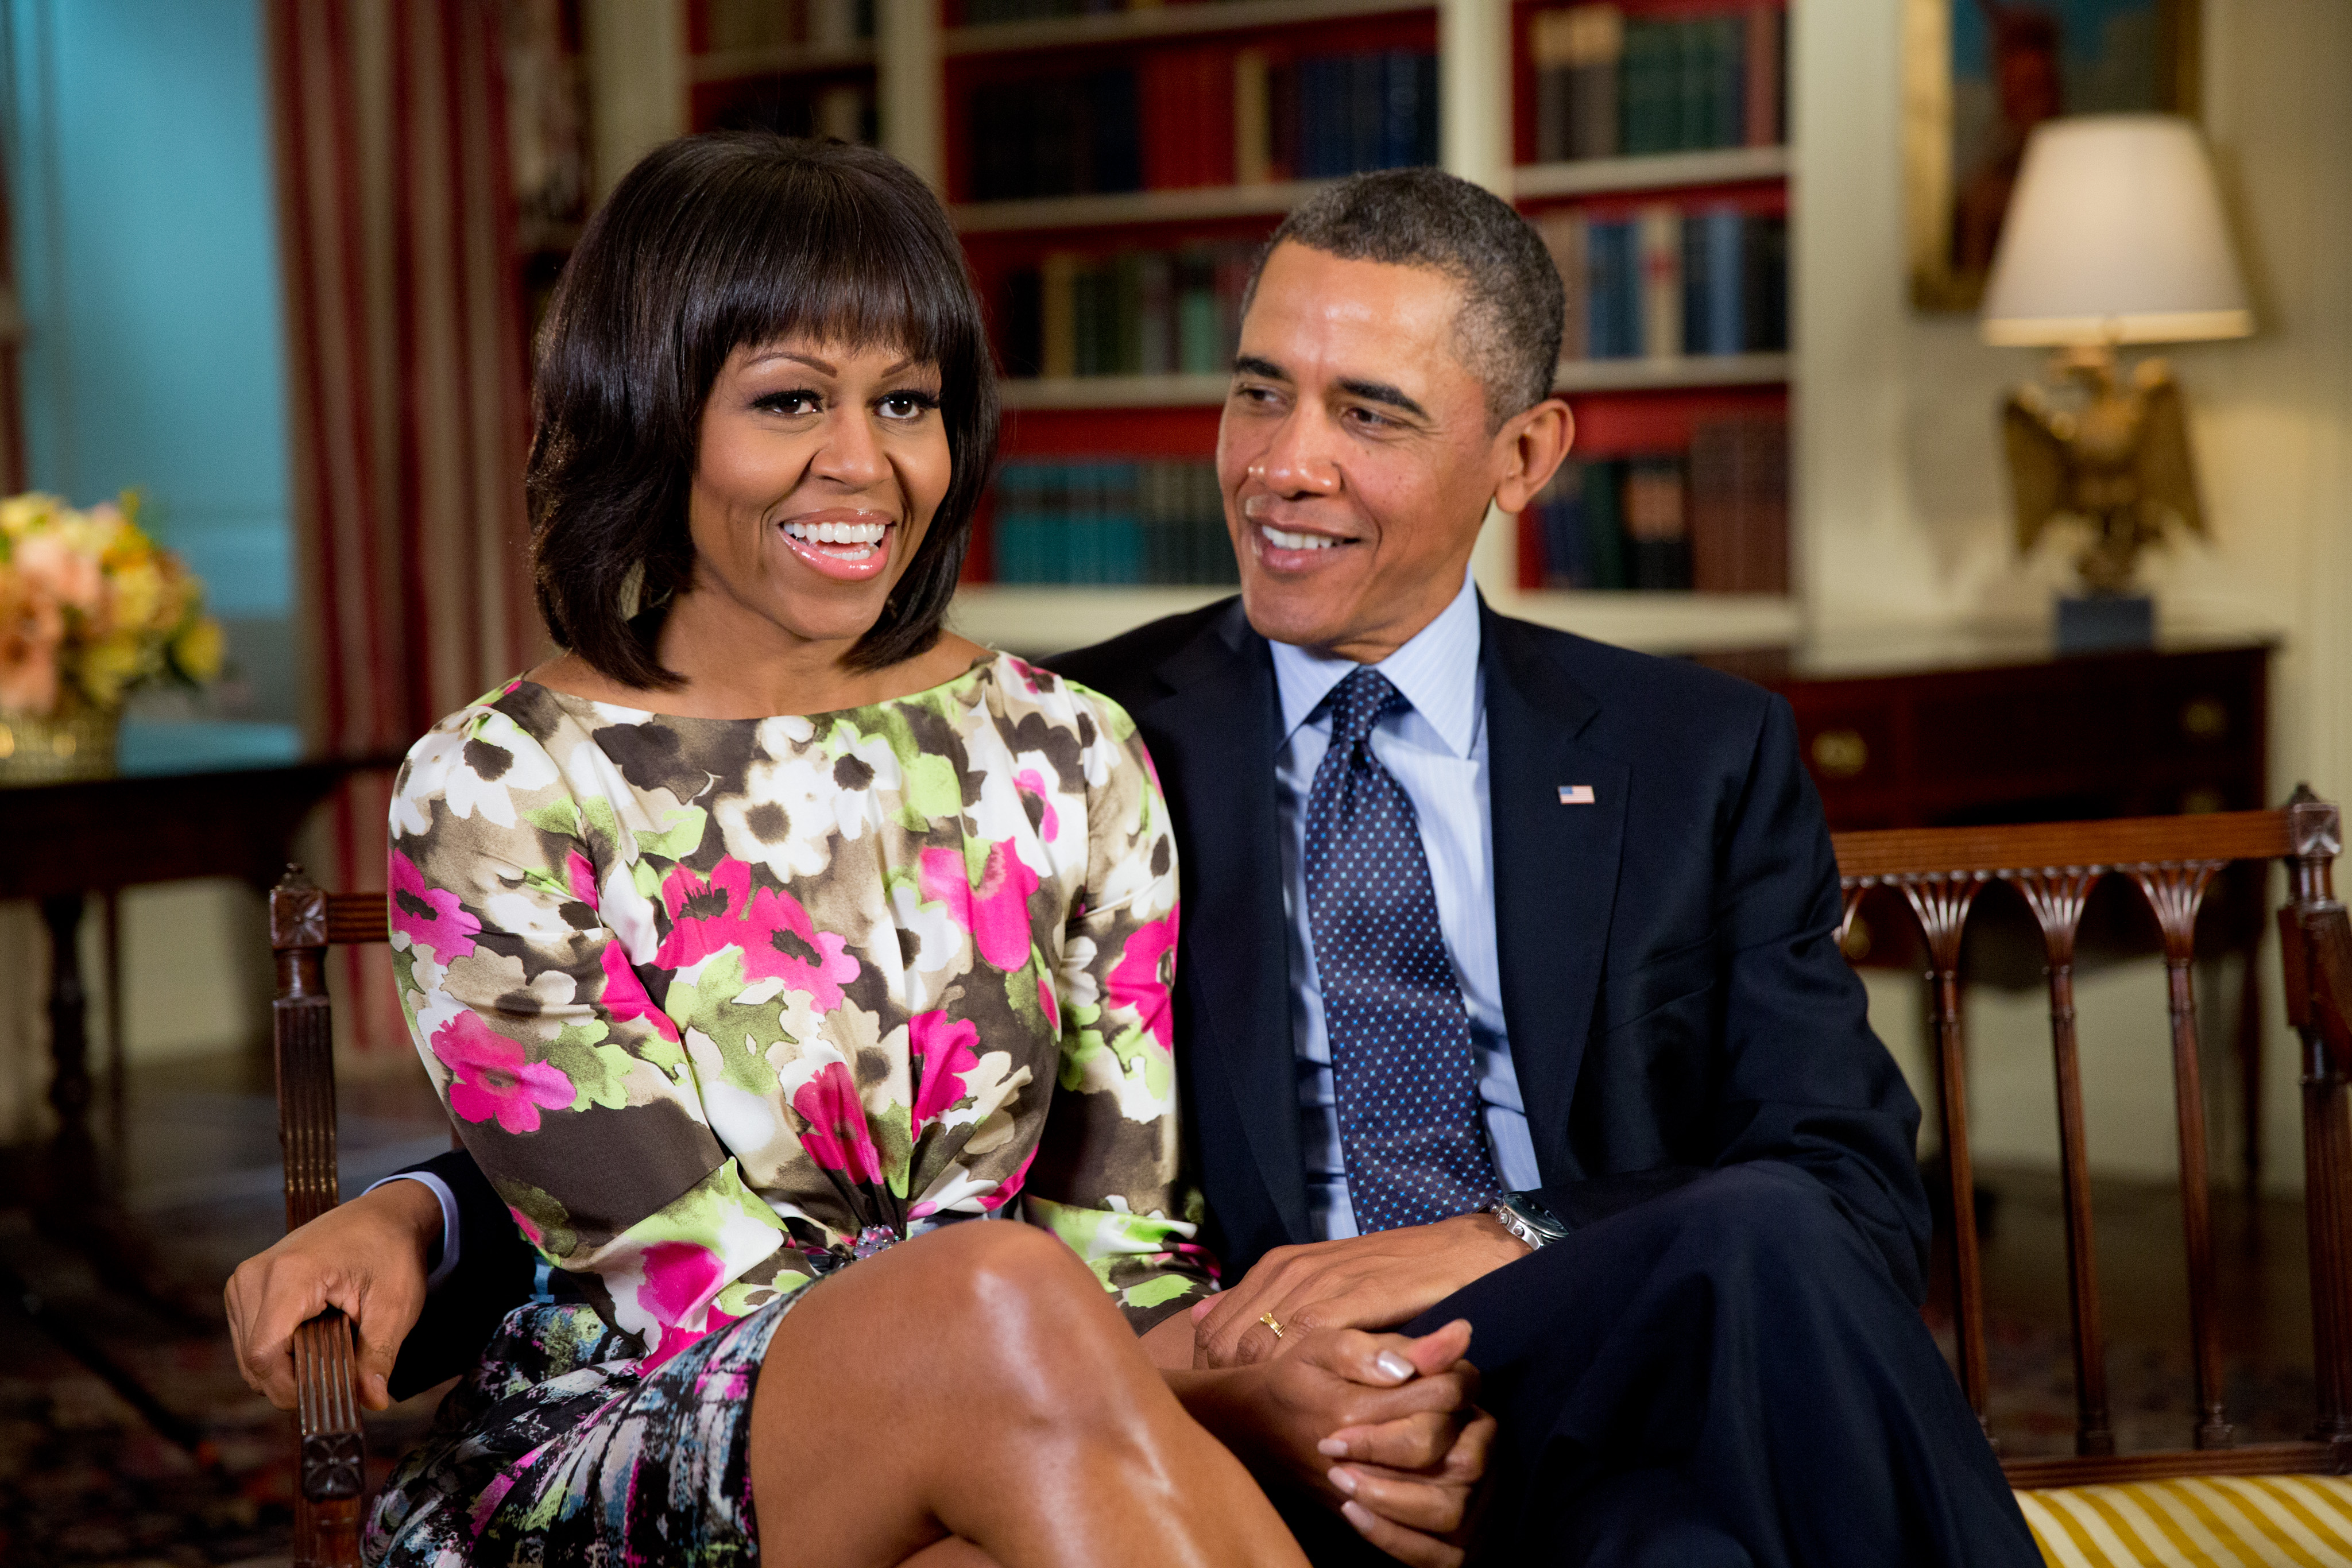 Michelle_and_Barack_Obama